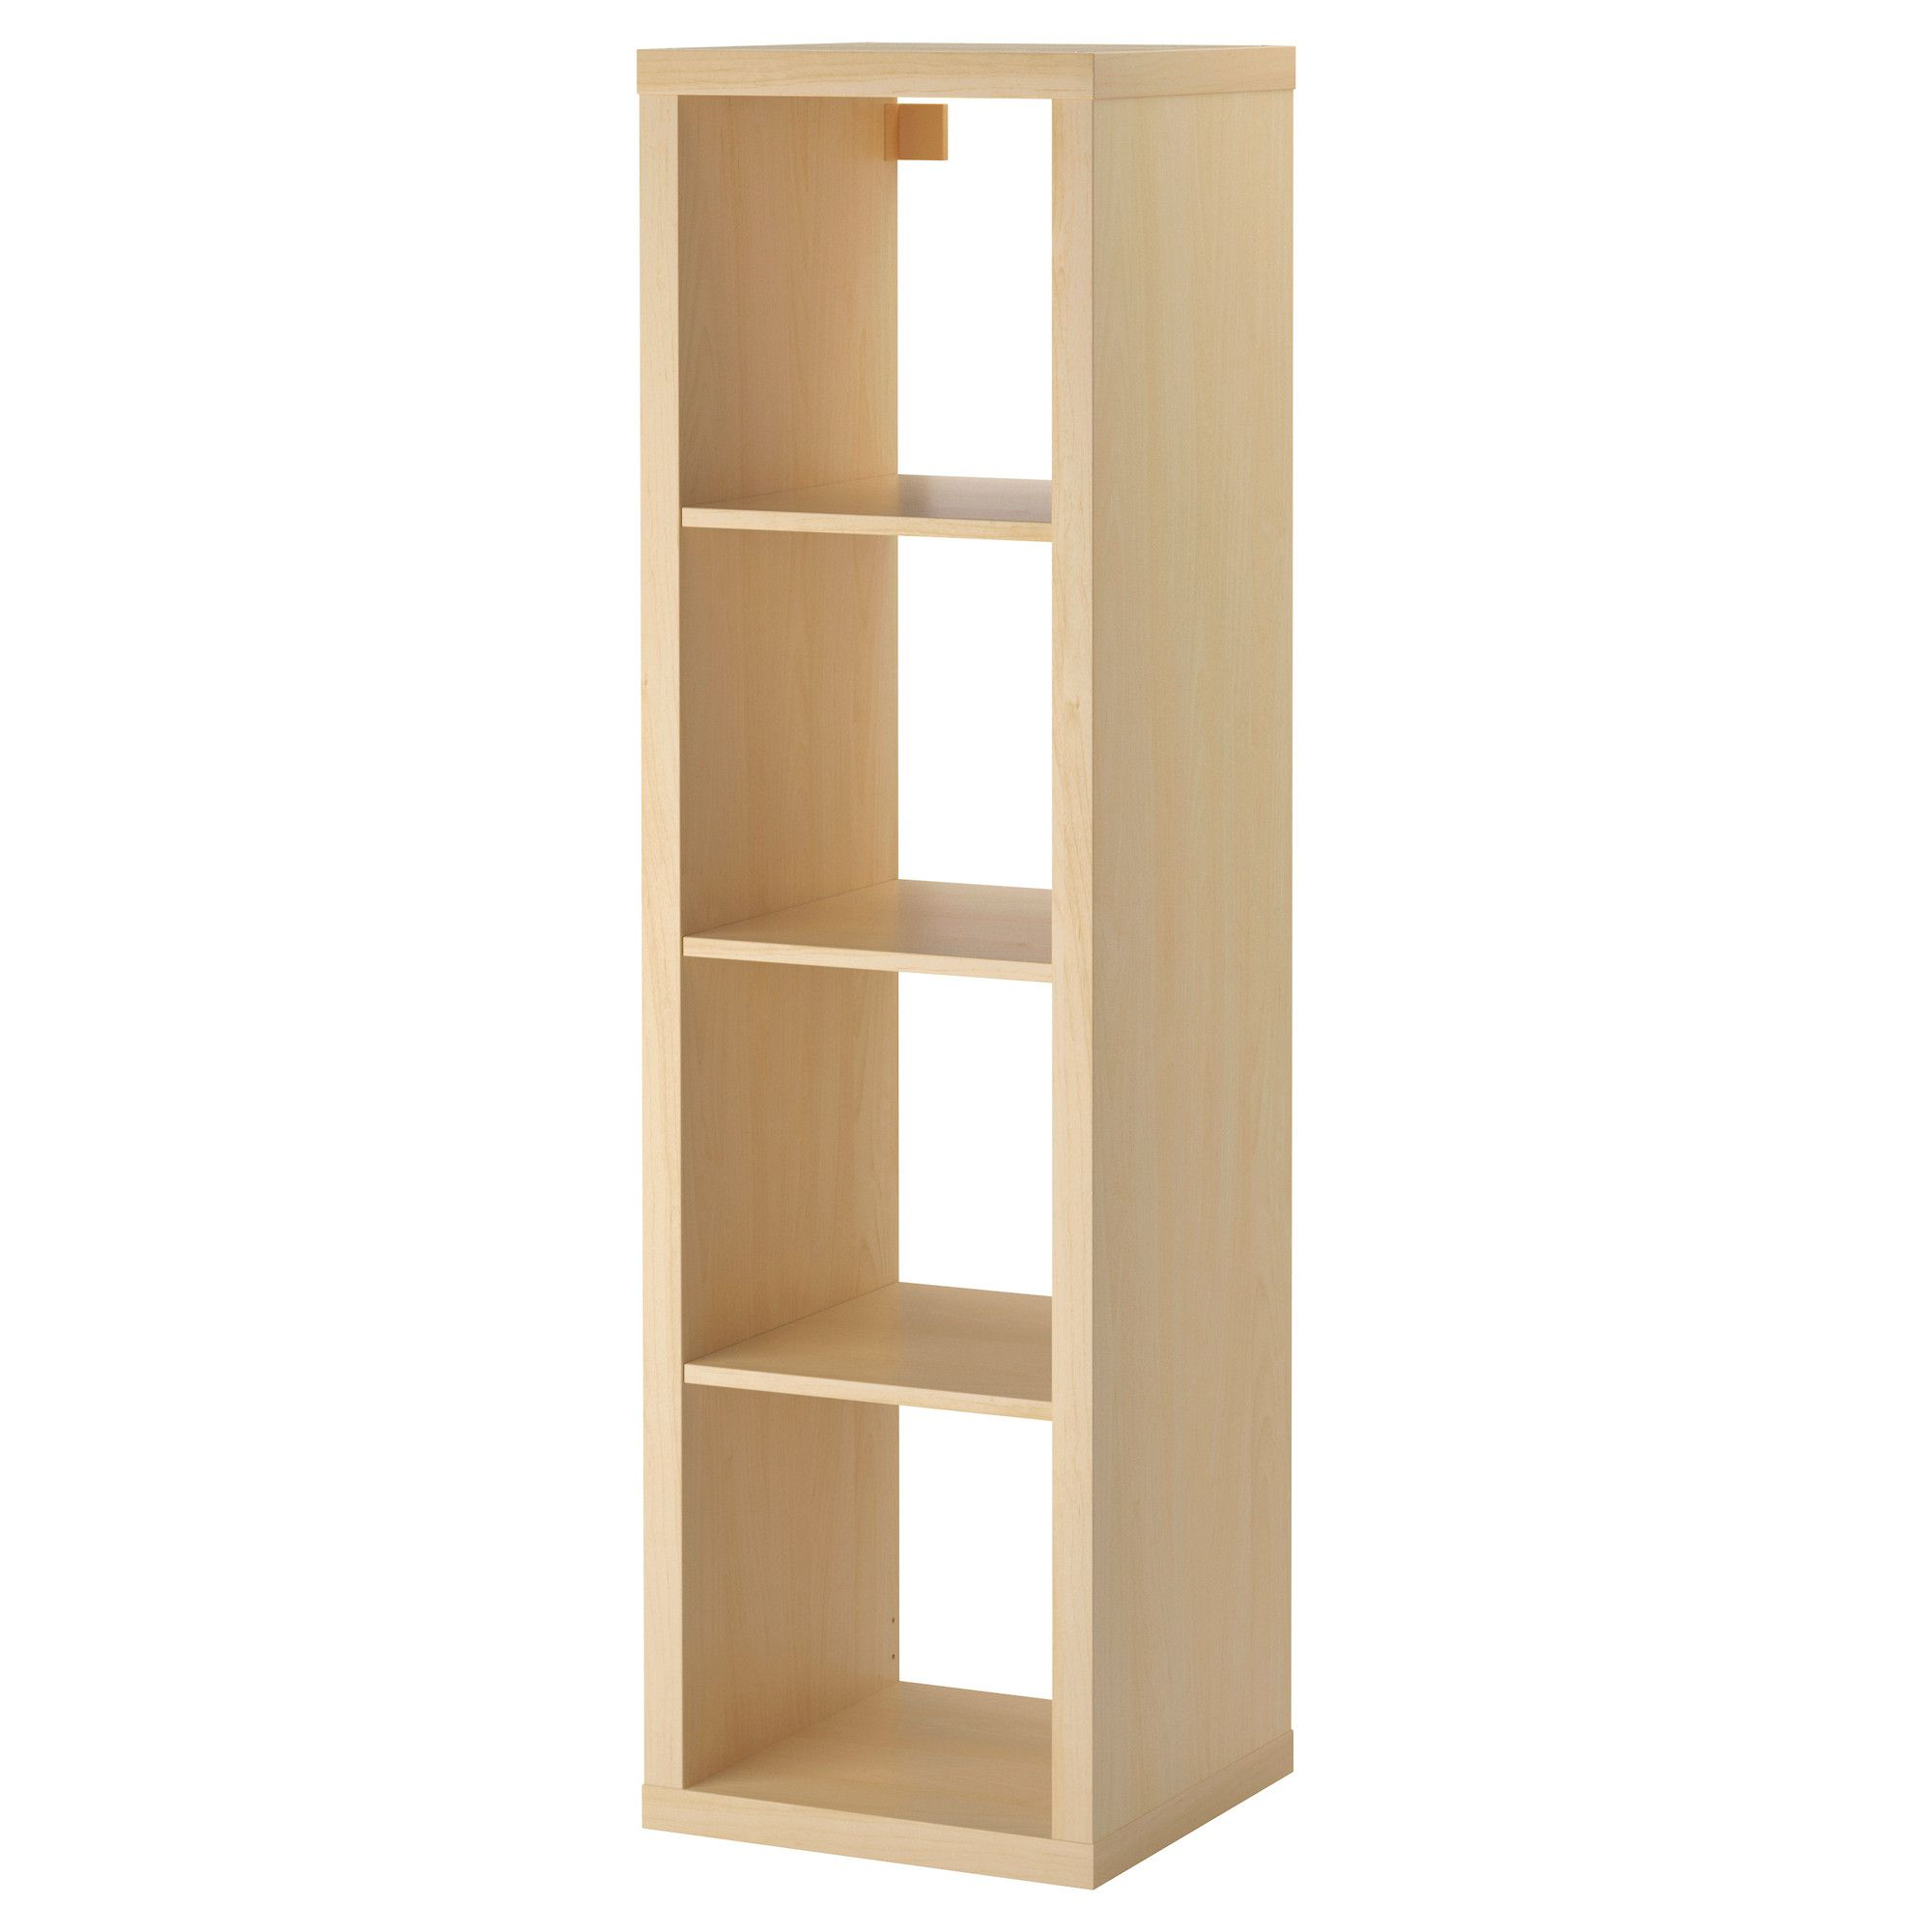 Ikea Expedit Länge Turn On Its Side For Cubbies Lining Bedroom Walls Kallax